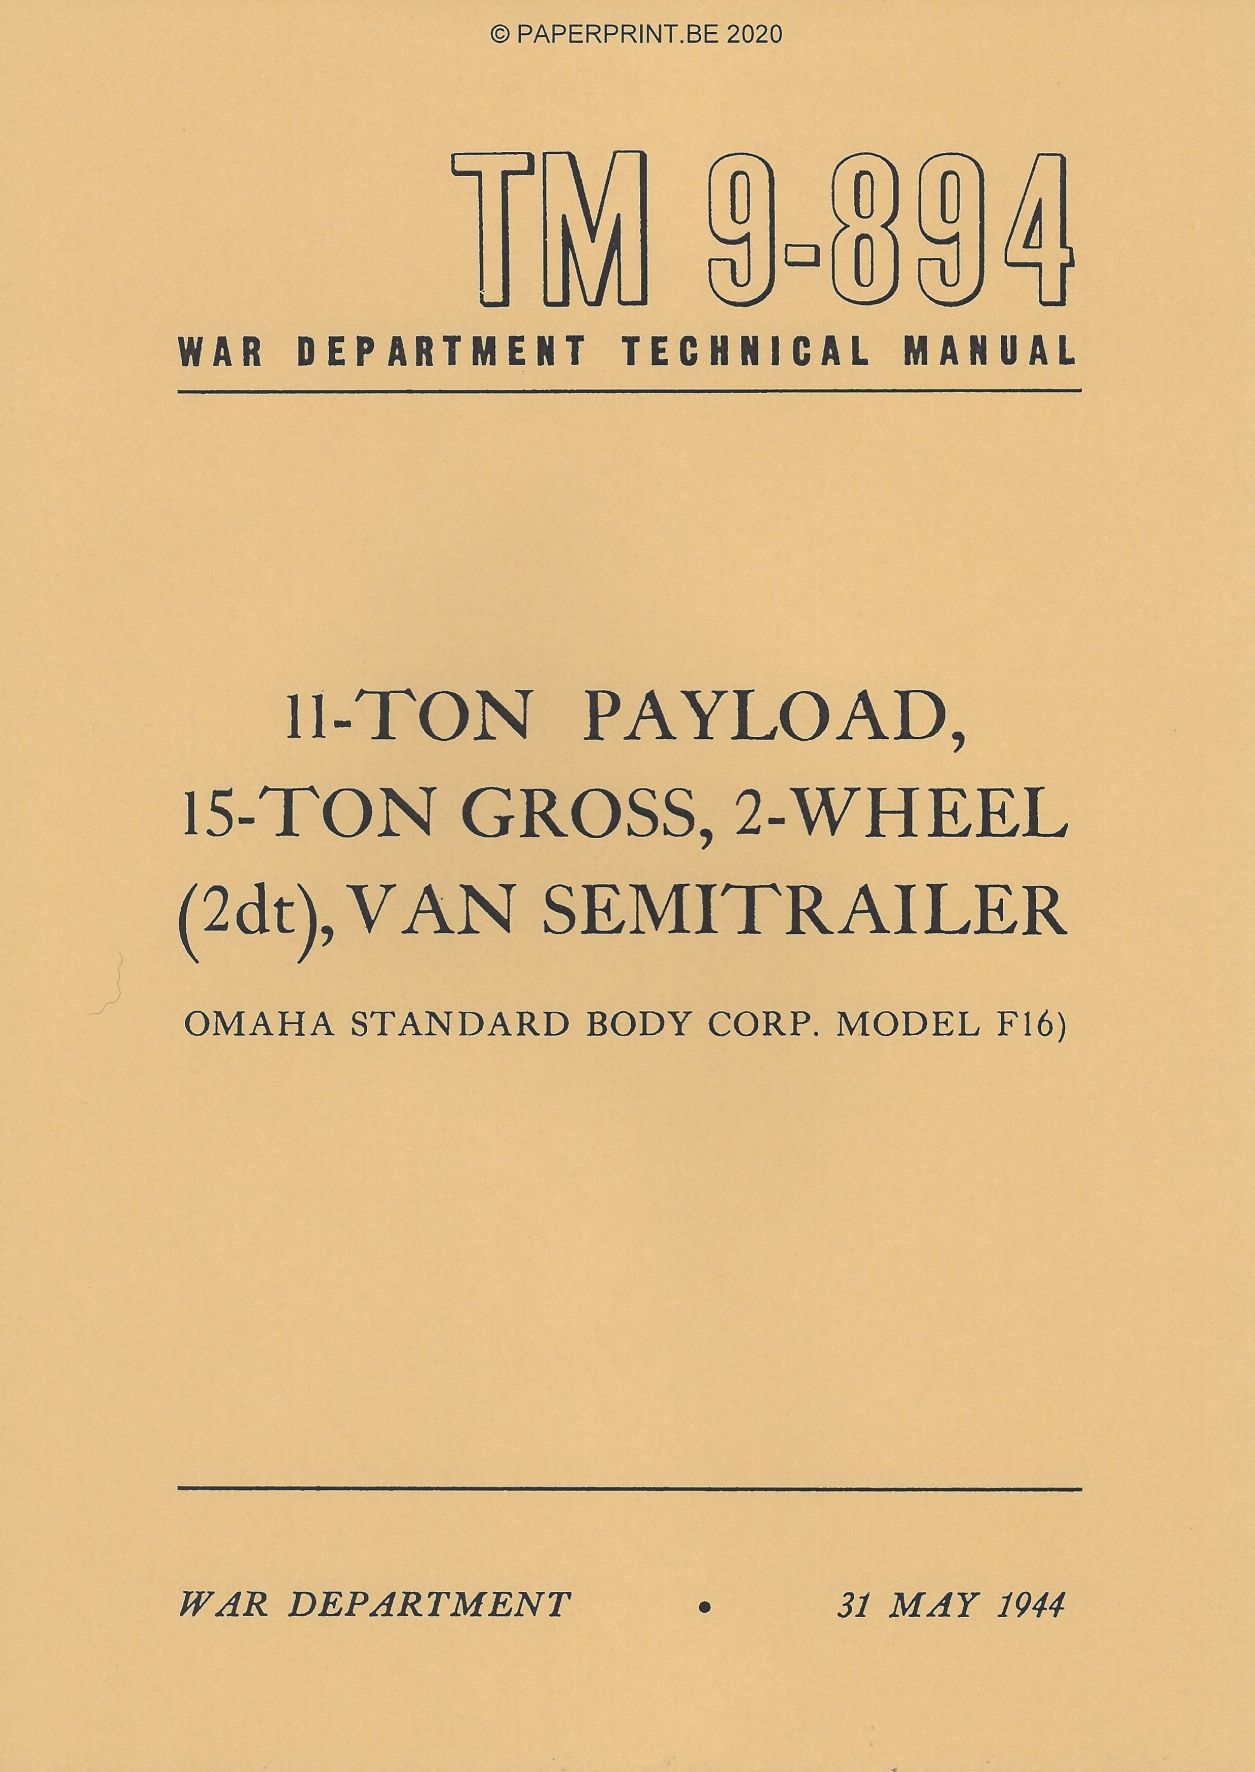 TM 9-894 US 11-TON PAYLOAD, 15-TON GROSS, 2-WHEEL (2DT), VAN SEMITRAILER